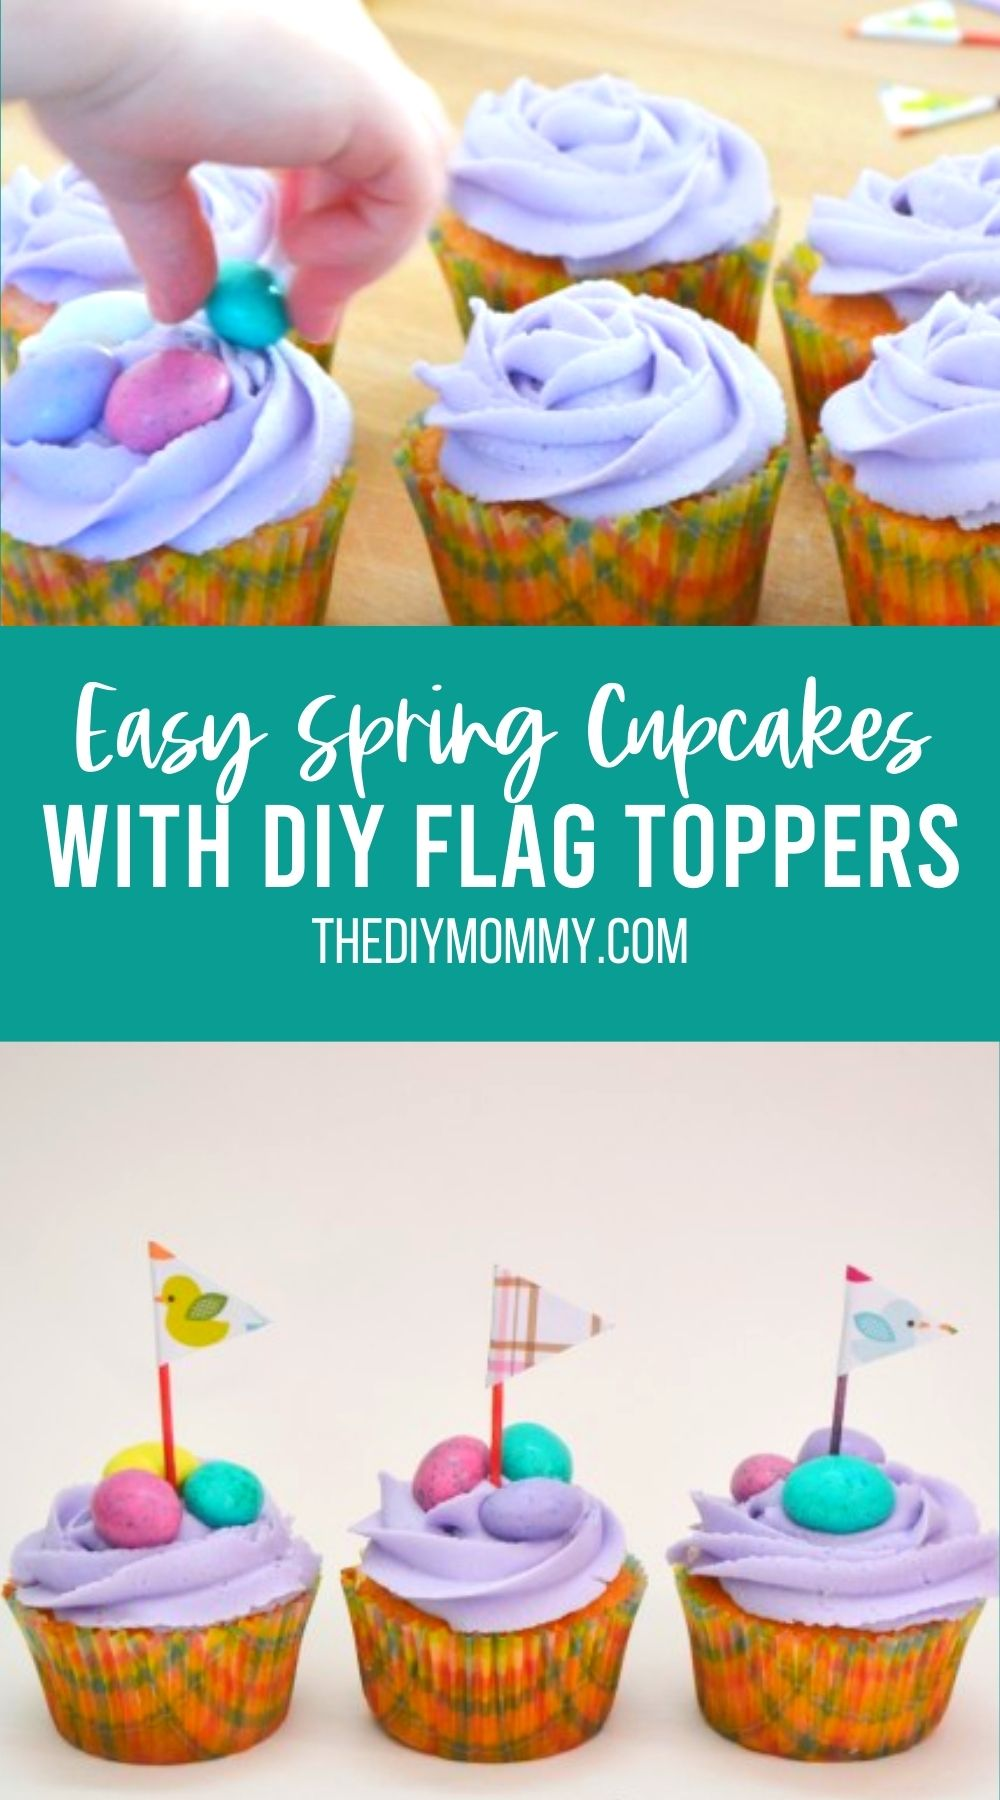 Easy Spring Cupcakes With DIY Flag Toppers